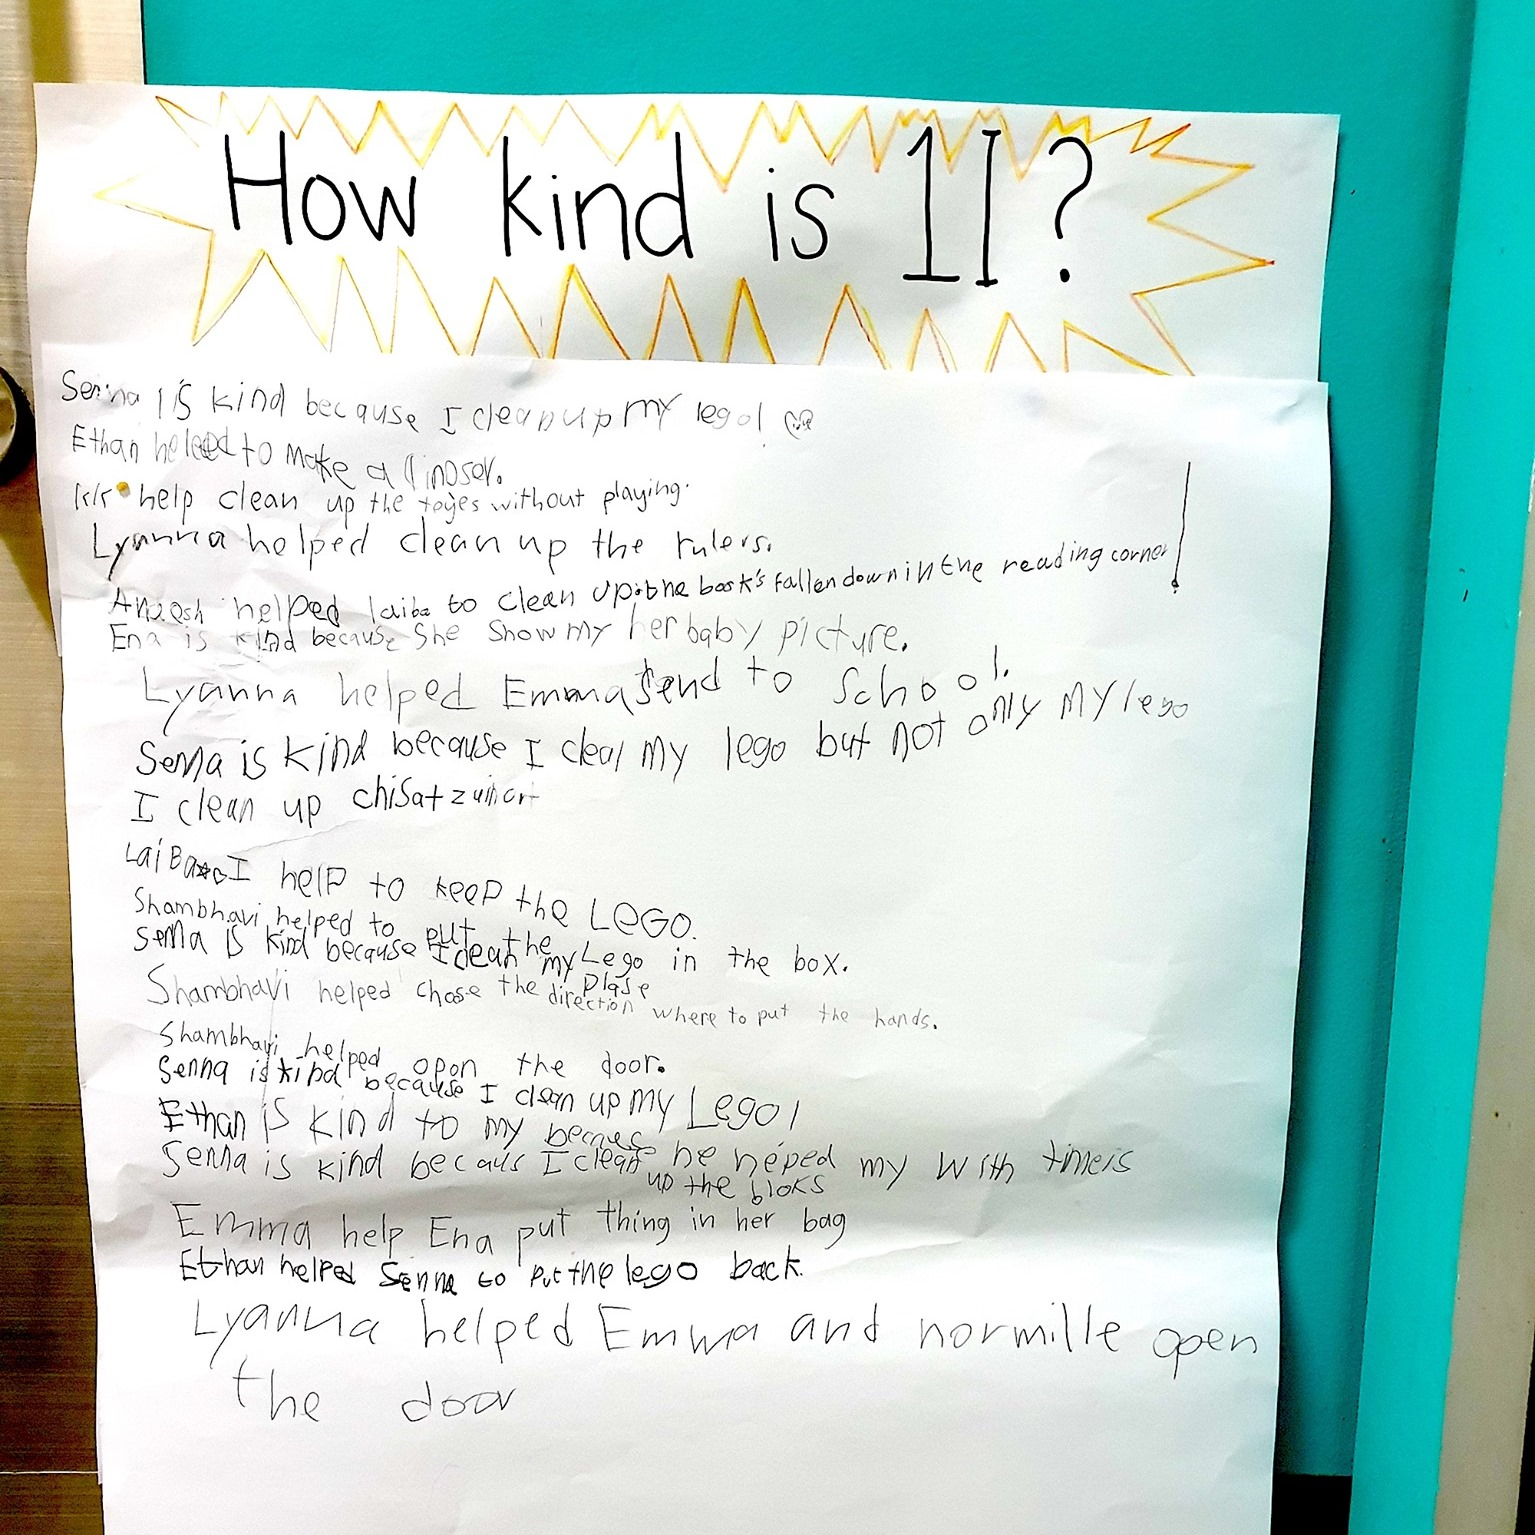 OWIS Kindness - 10